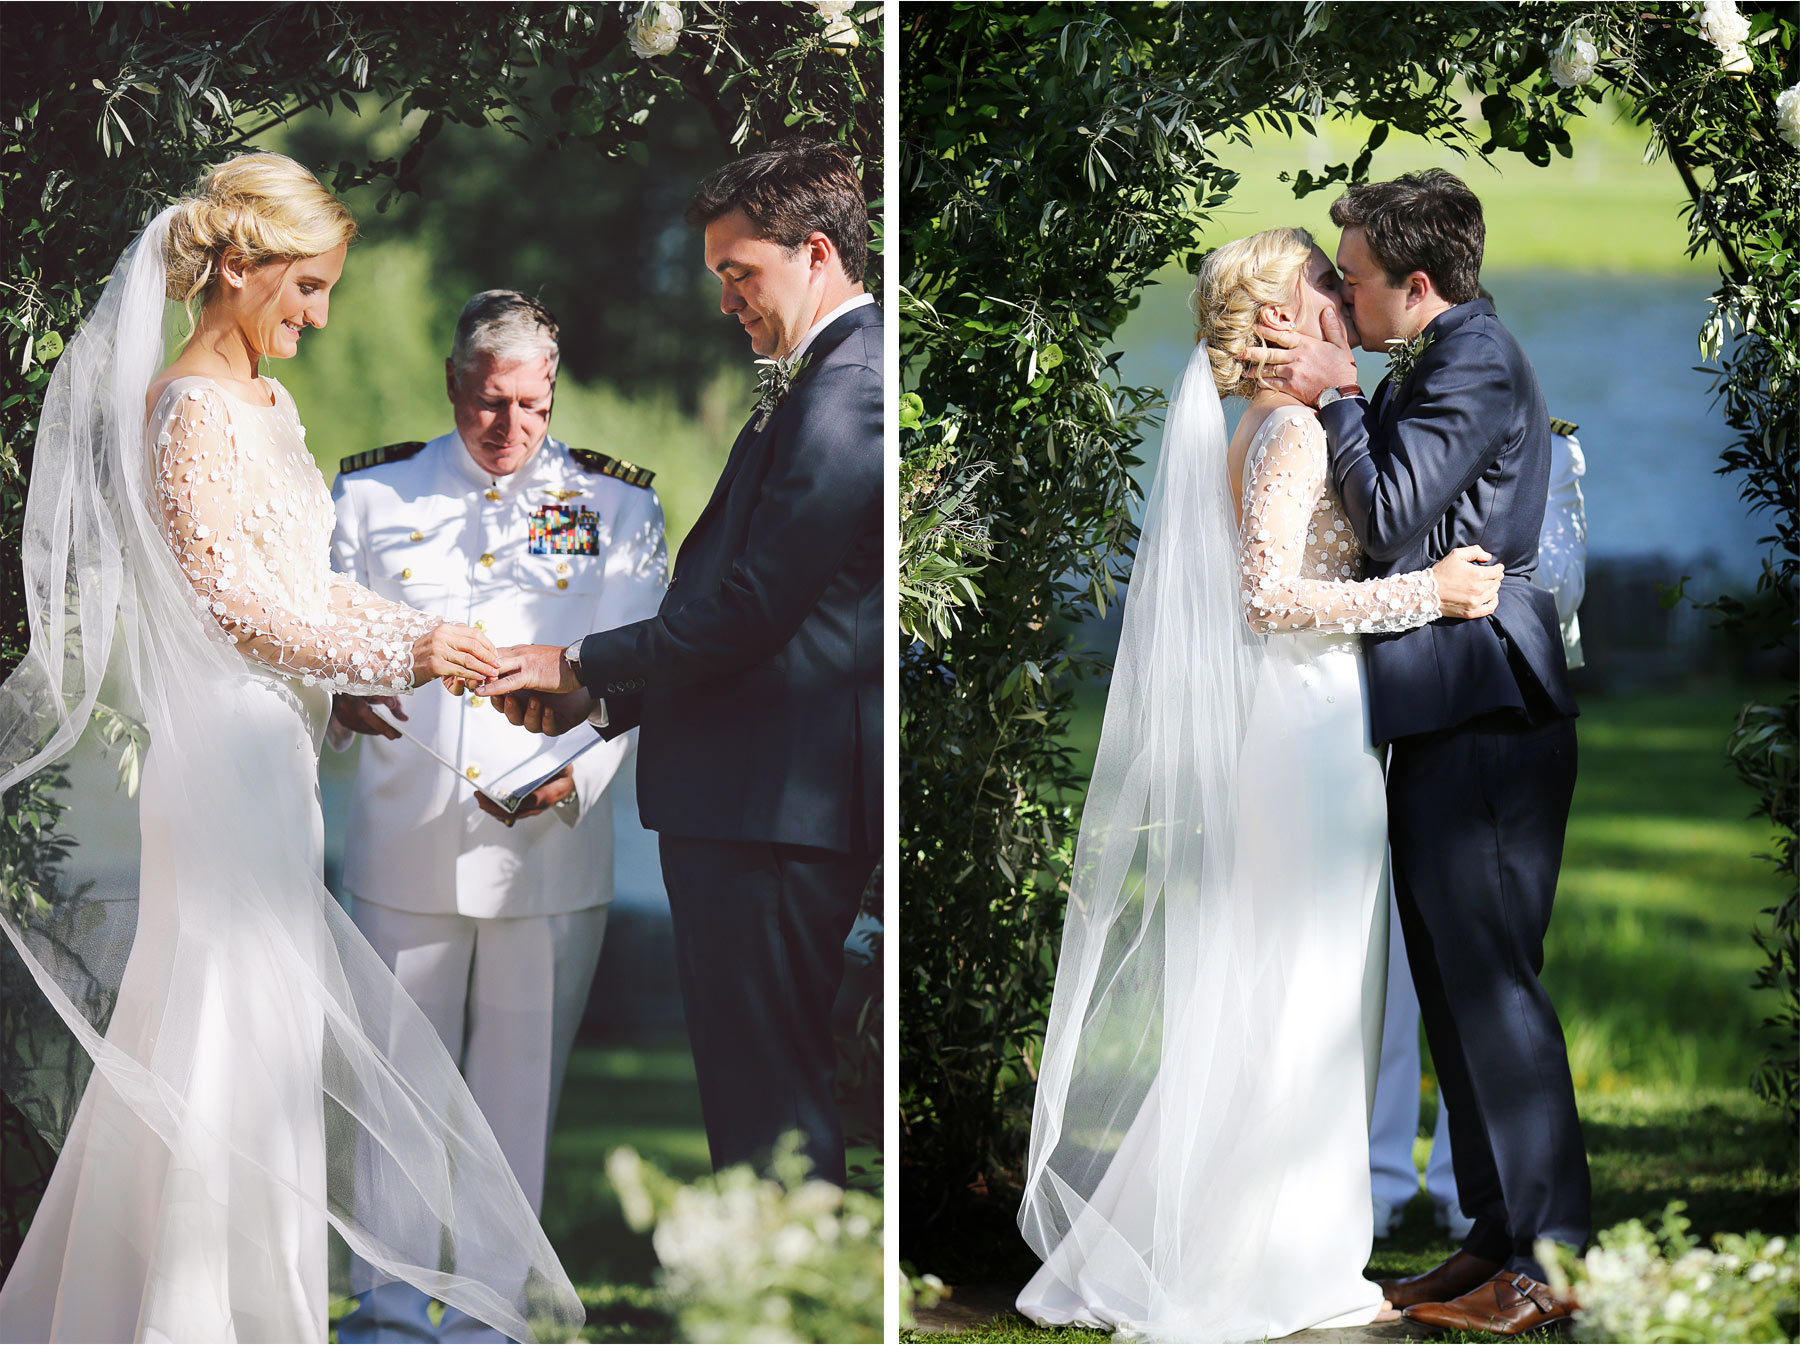 25-Stowe-Vermont-Wedding-Photography-by-Vick-Photography-Edson-Hill-Ceremony-Outdoor-Lake-Mackenzie-and-Jim.jpg